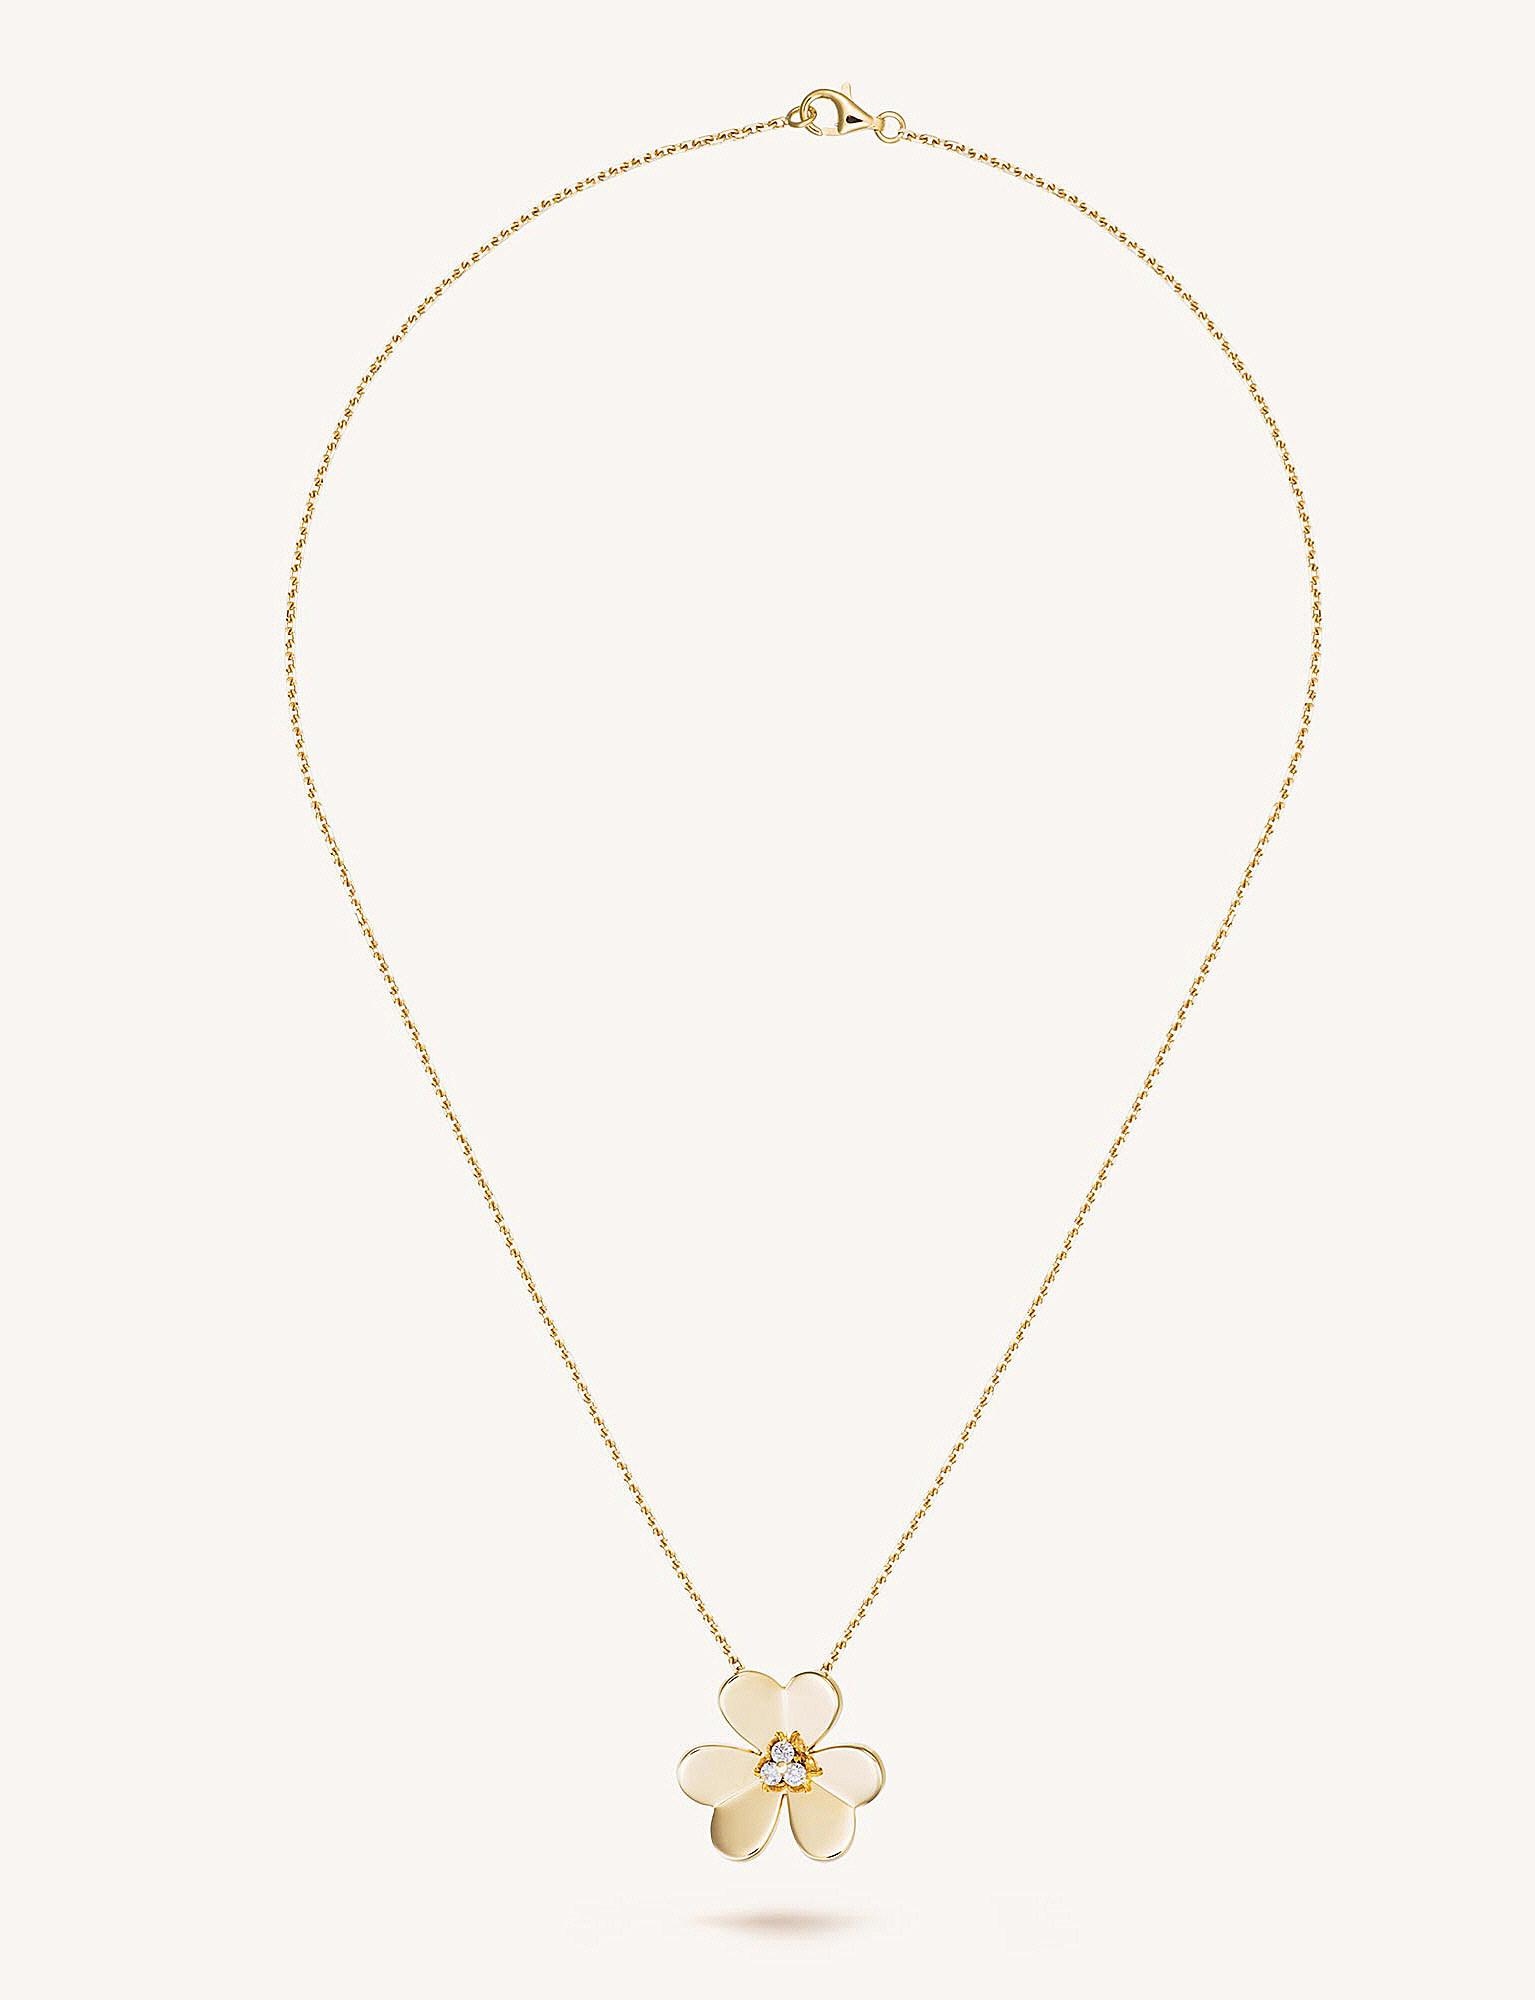 Lyst van cleef arpels frivole gold and diamond large pendant in van cleef arpels aloadofball Image collections